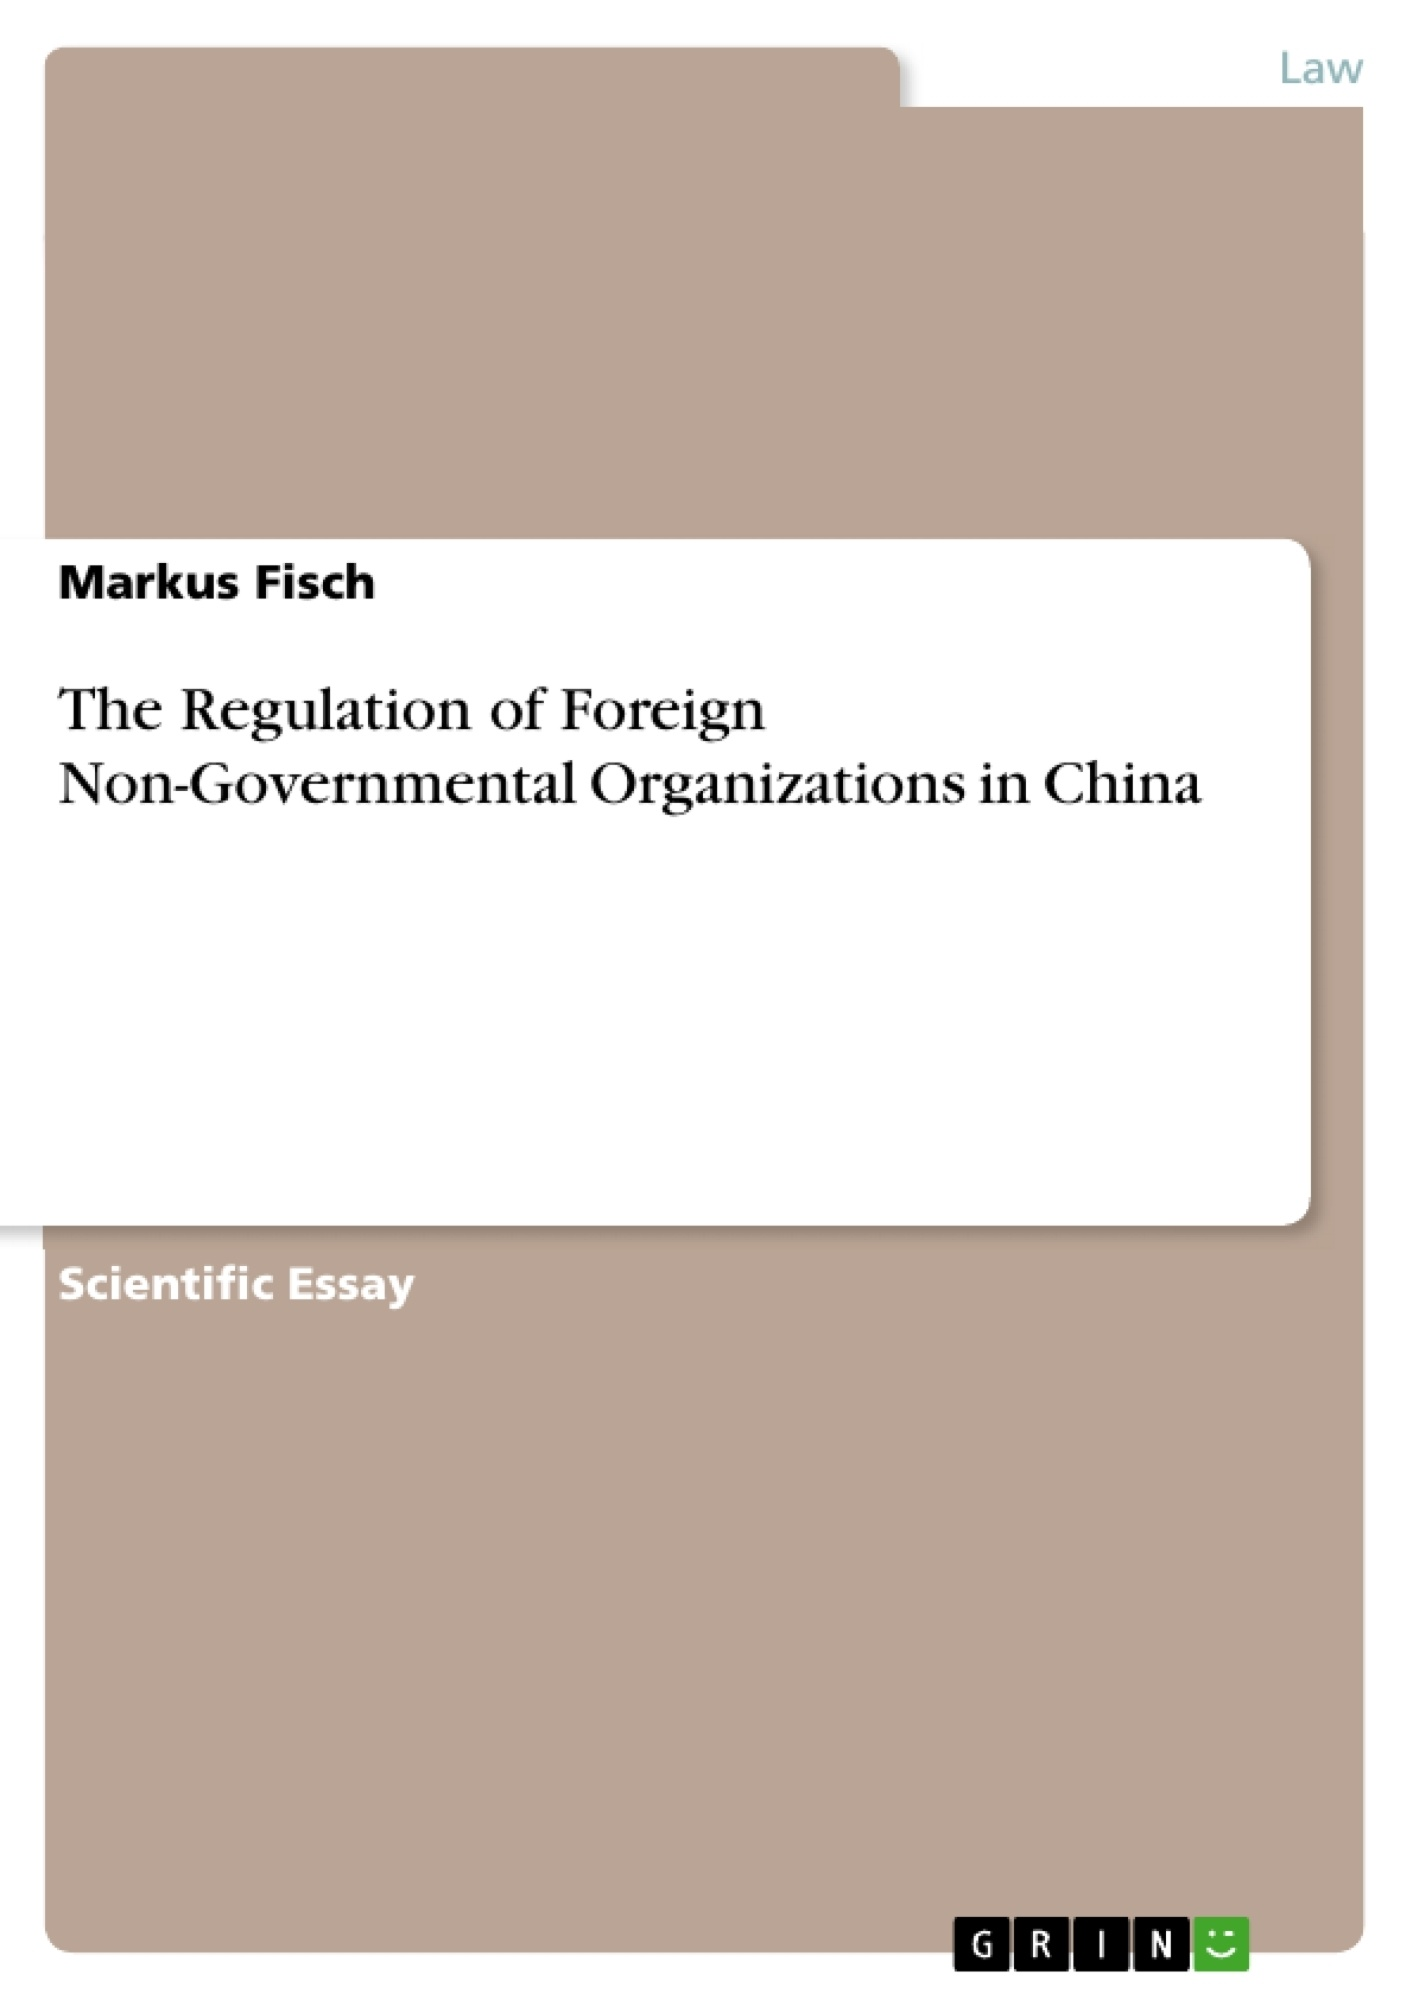 Title: The Regulation of Foreign Non-Governmental Organizations in China